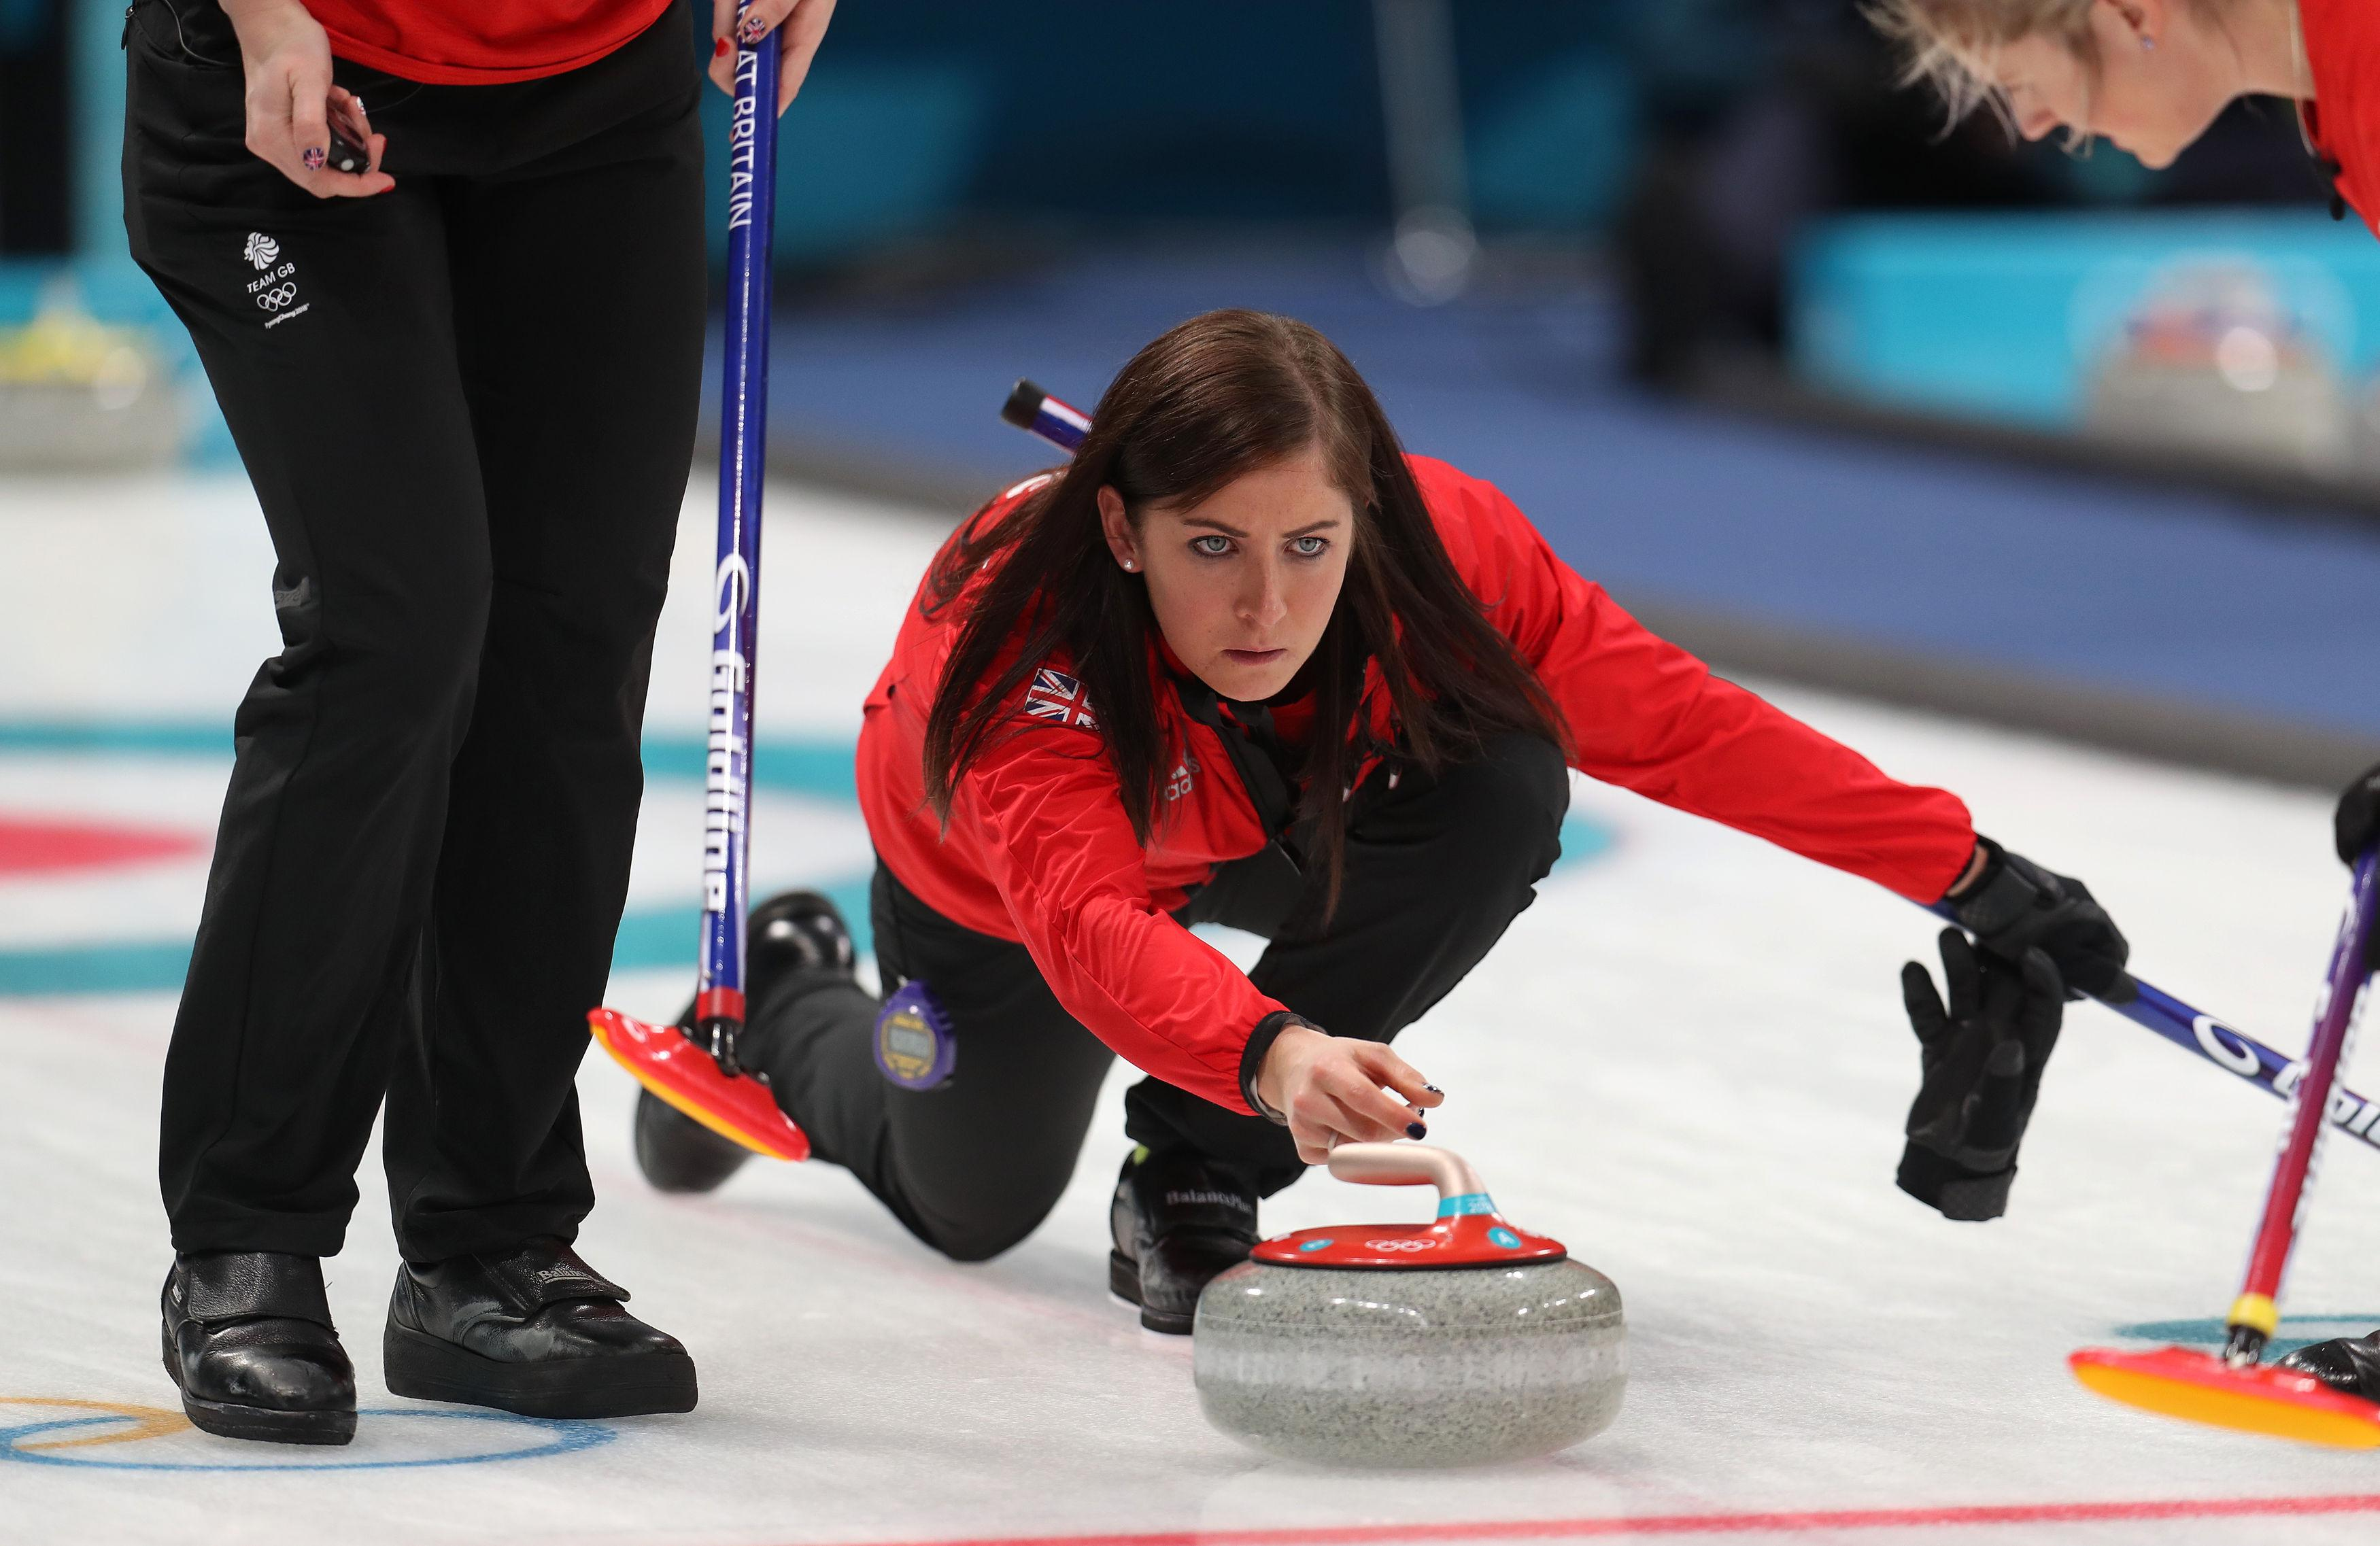 Eve Muirhead's curling team have helped inspire a nation to try the sport at home